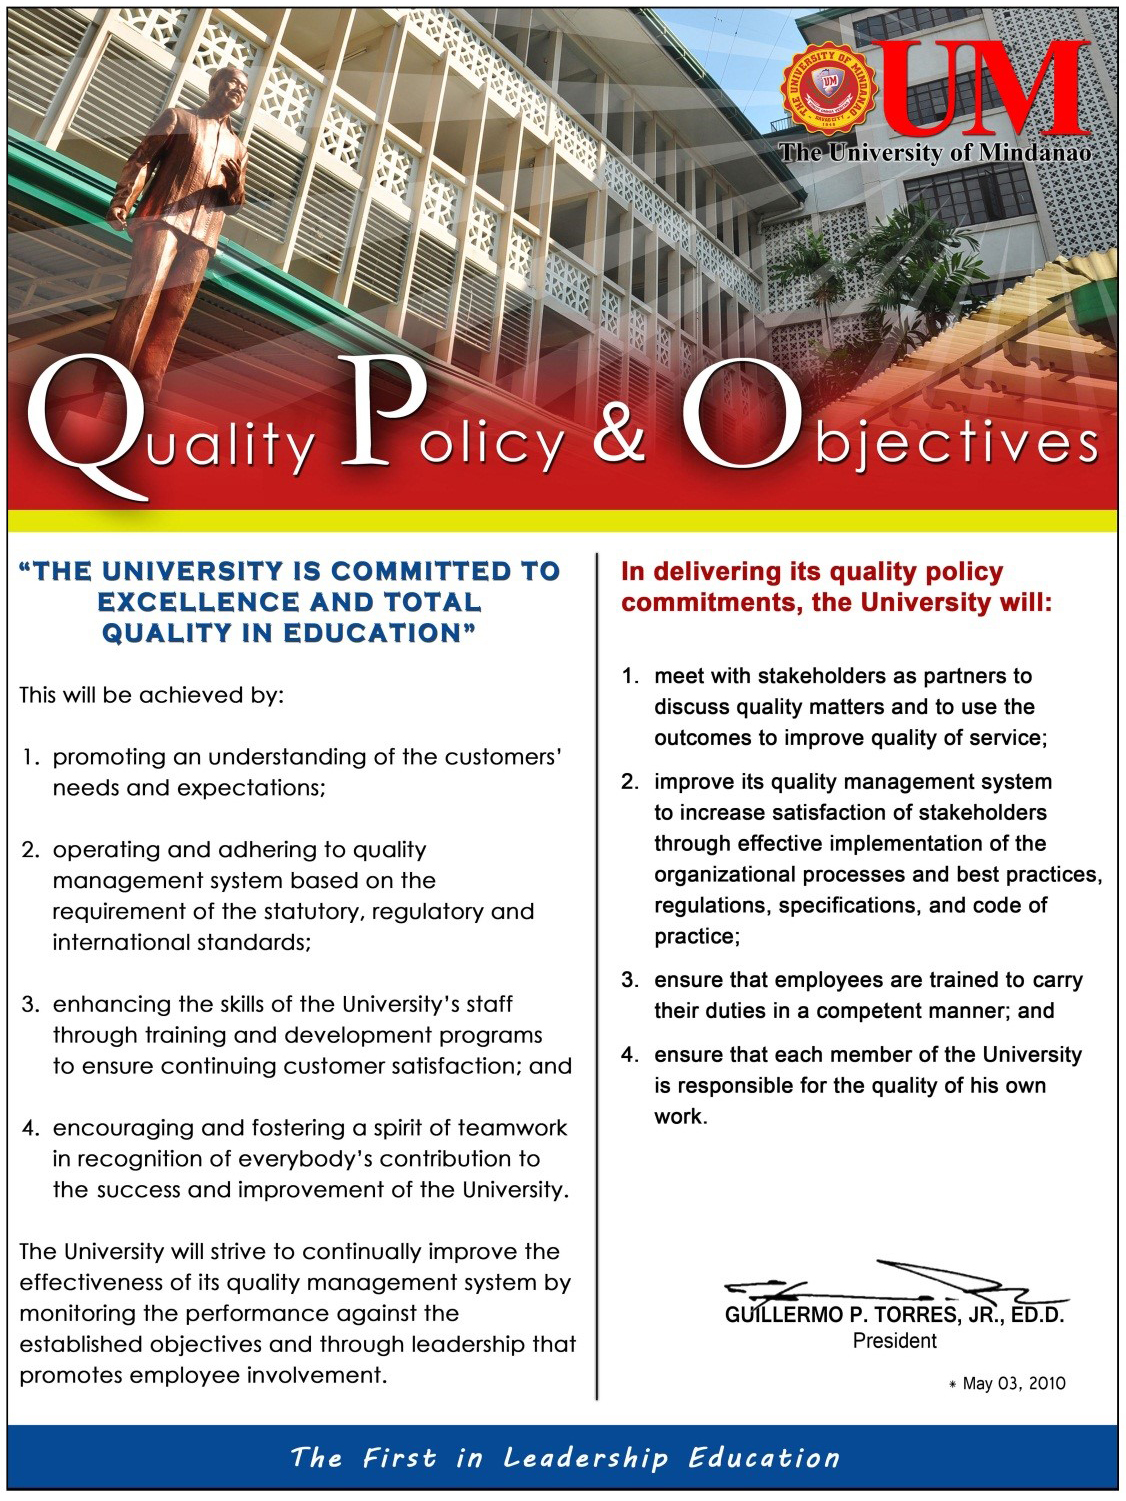 Quality Policy and Objectives